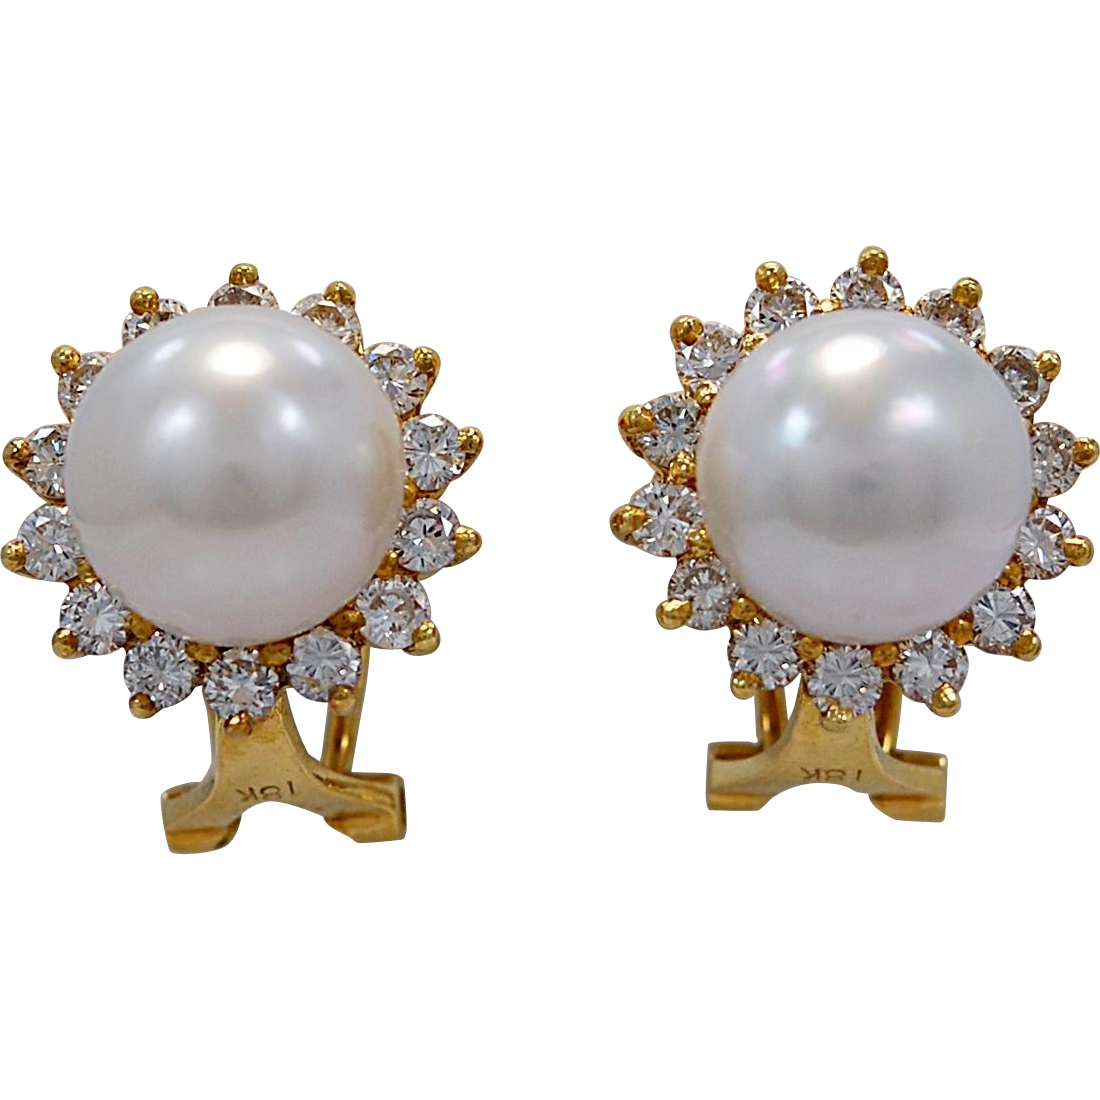 Estate 10mm Pearl, Diamond & 18K Yellow Gold Earrings - J35279